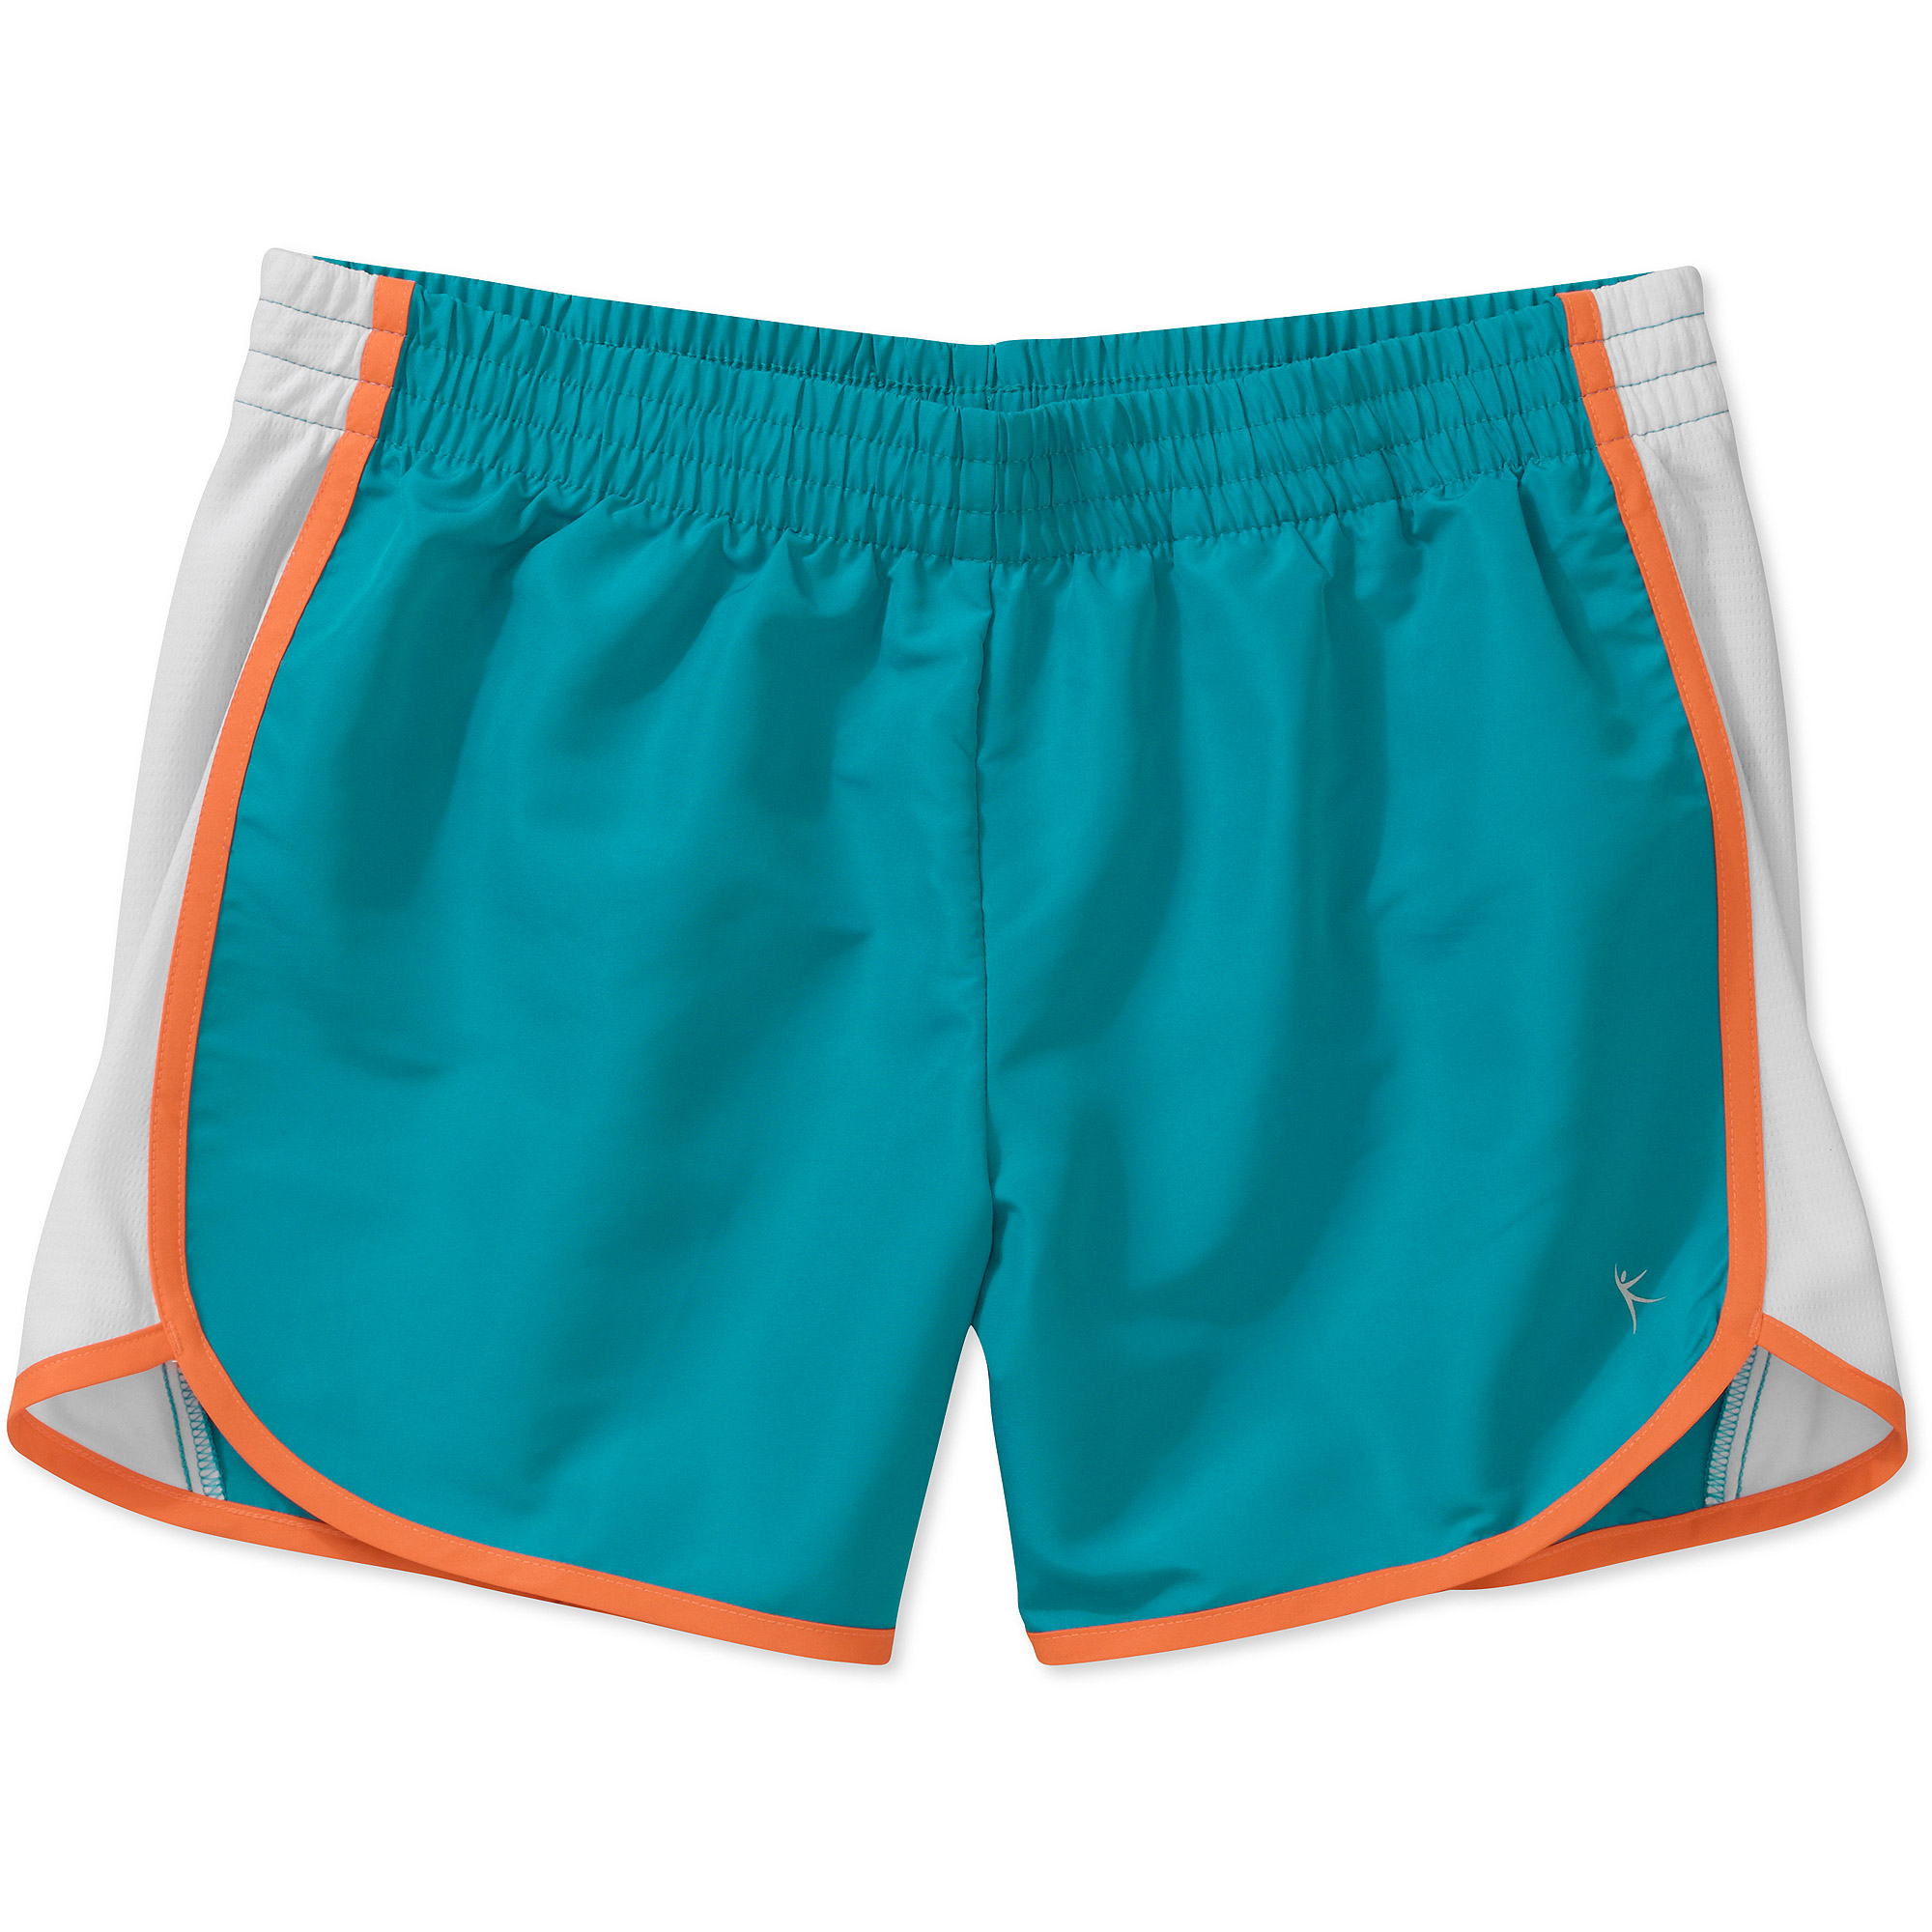 Danskin Now Women's Woven Running Shorts